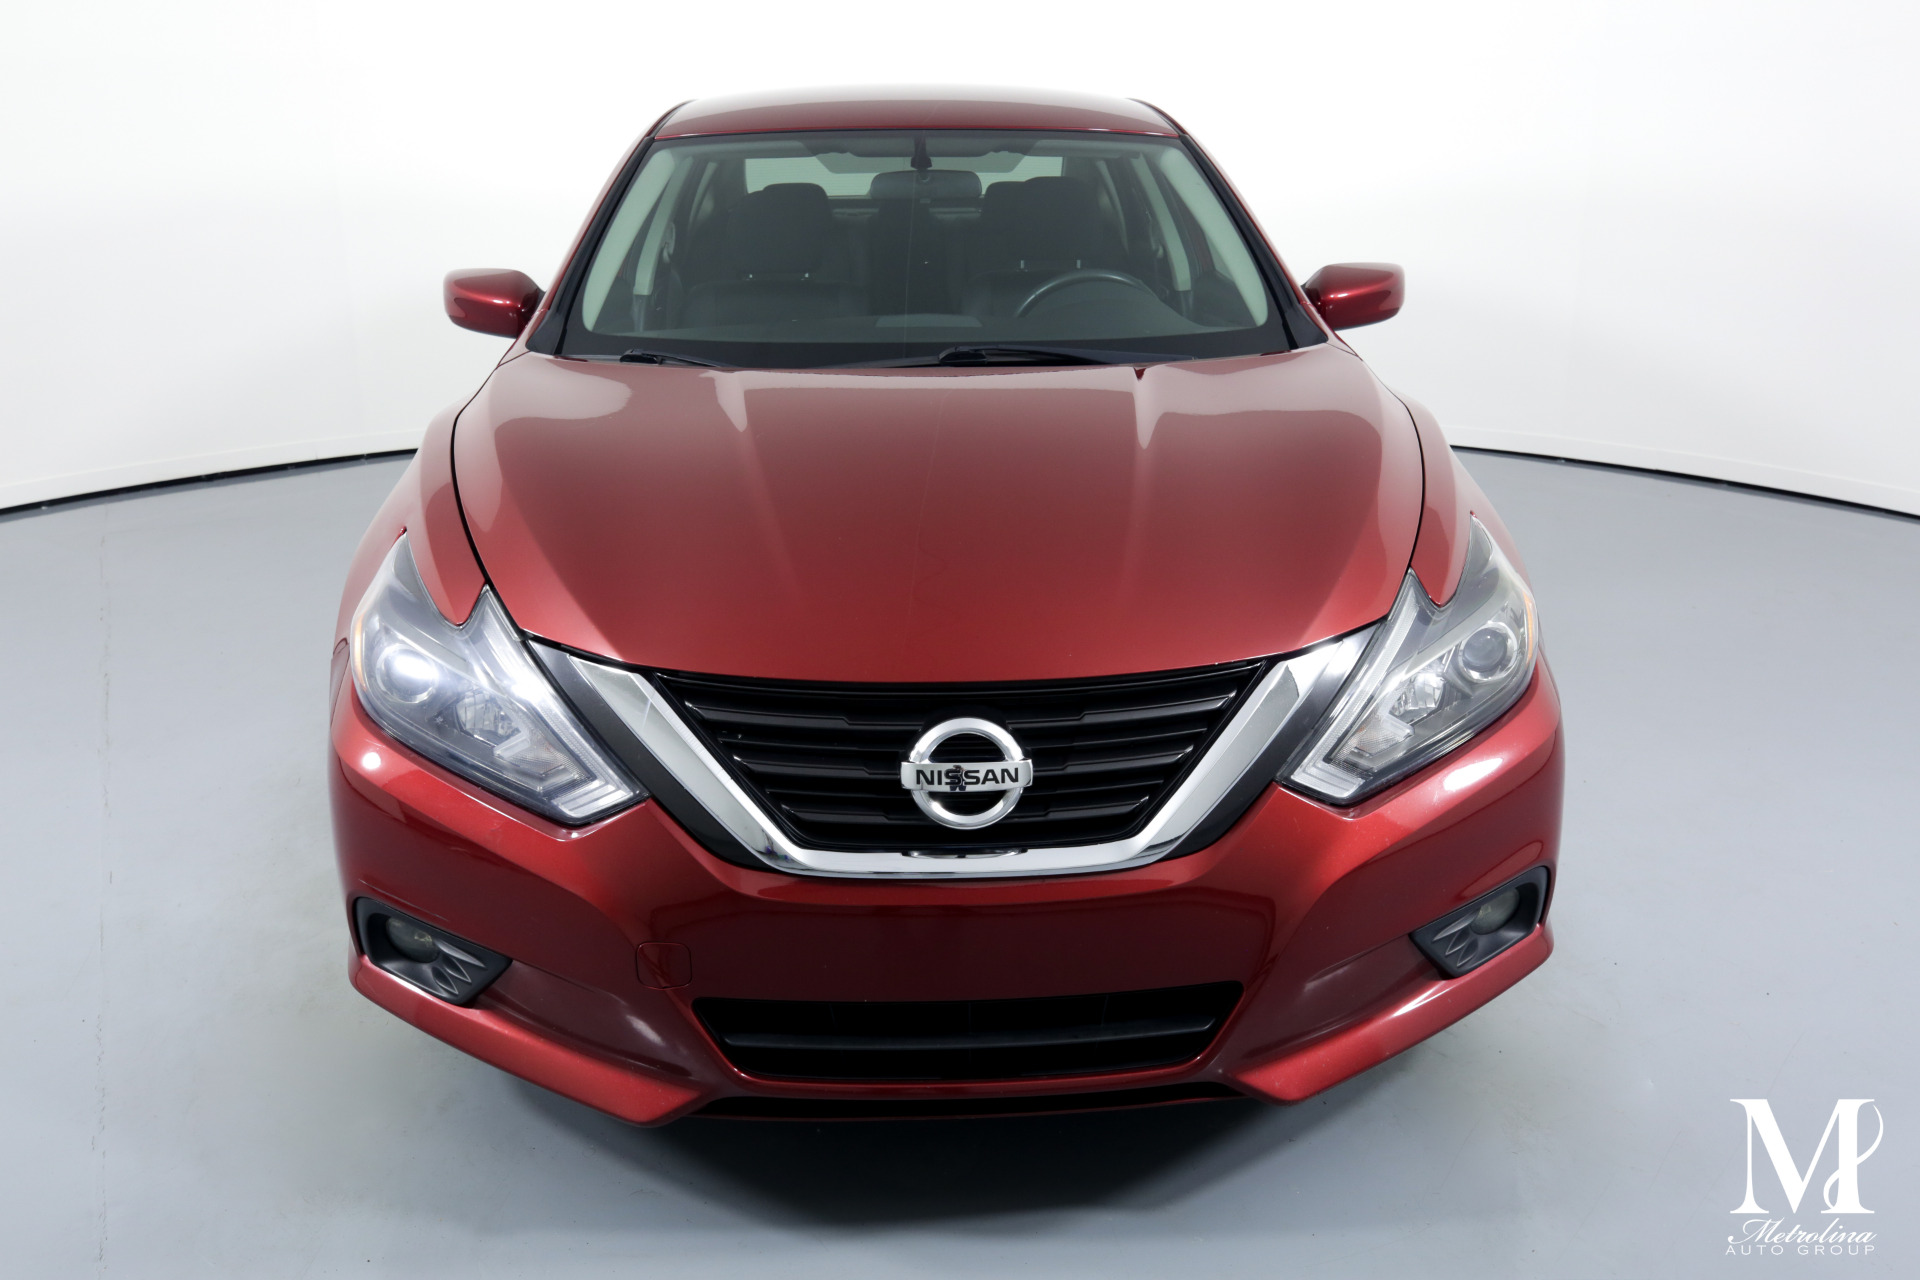 Used 2016 Nissan Altima 2.5 SR for sale $11,996 at Metrolina Auto Group in Charlotte NC 28217 - 3